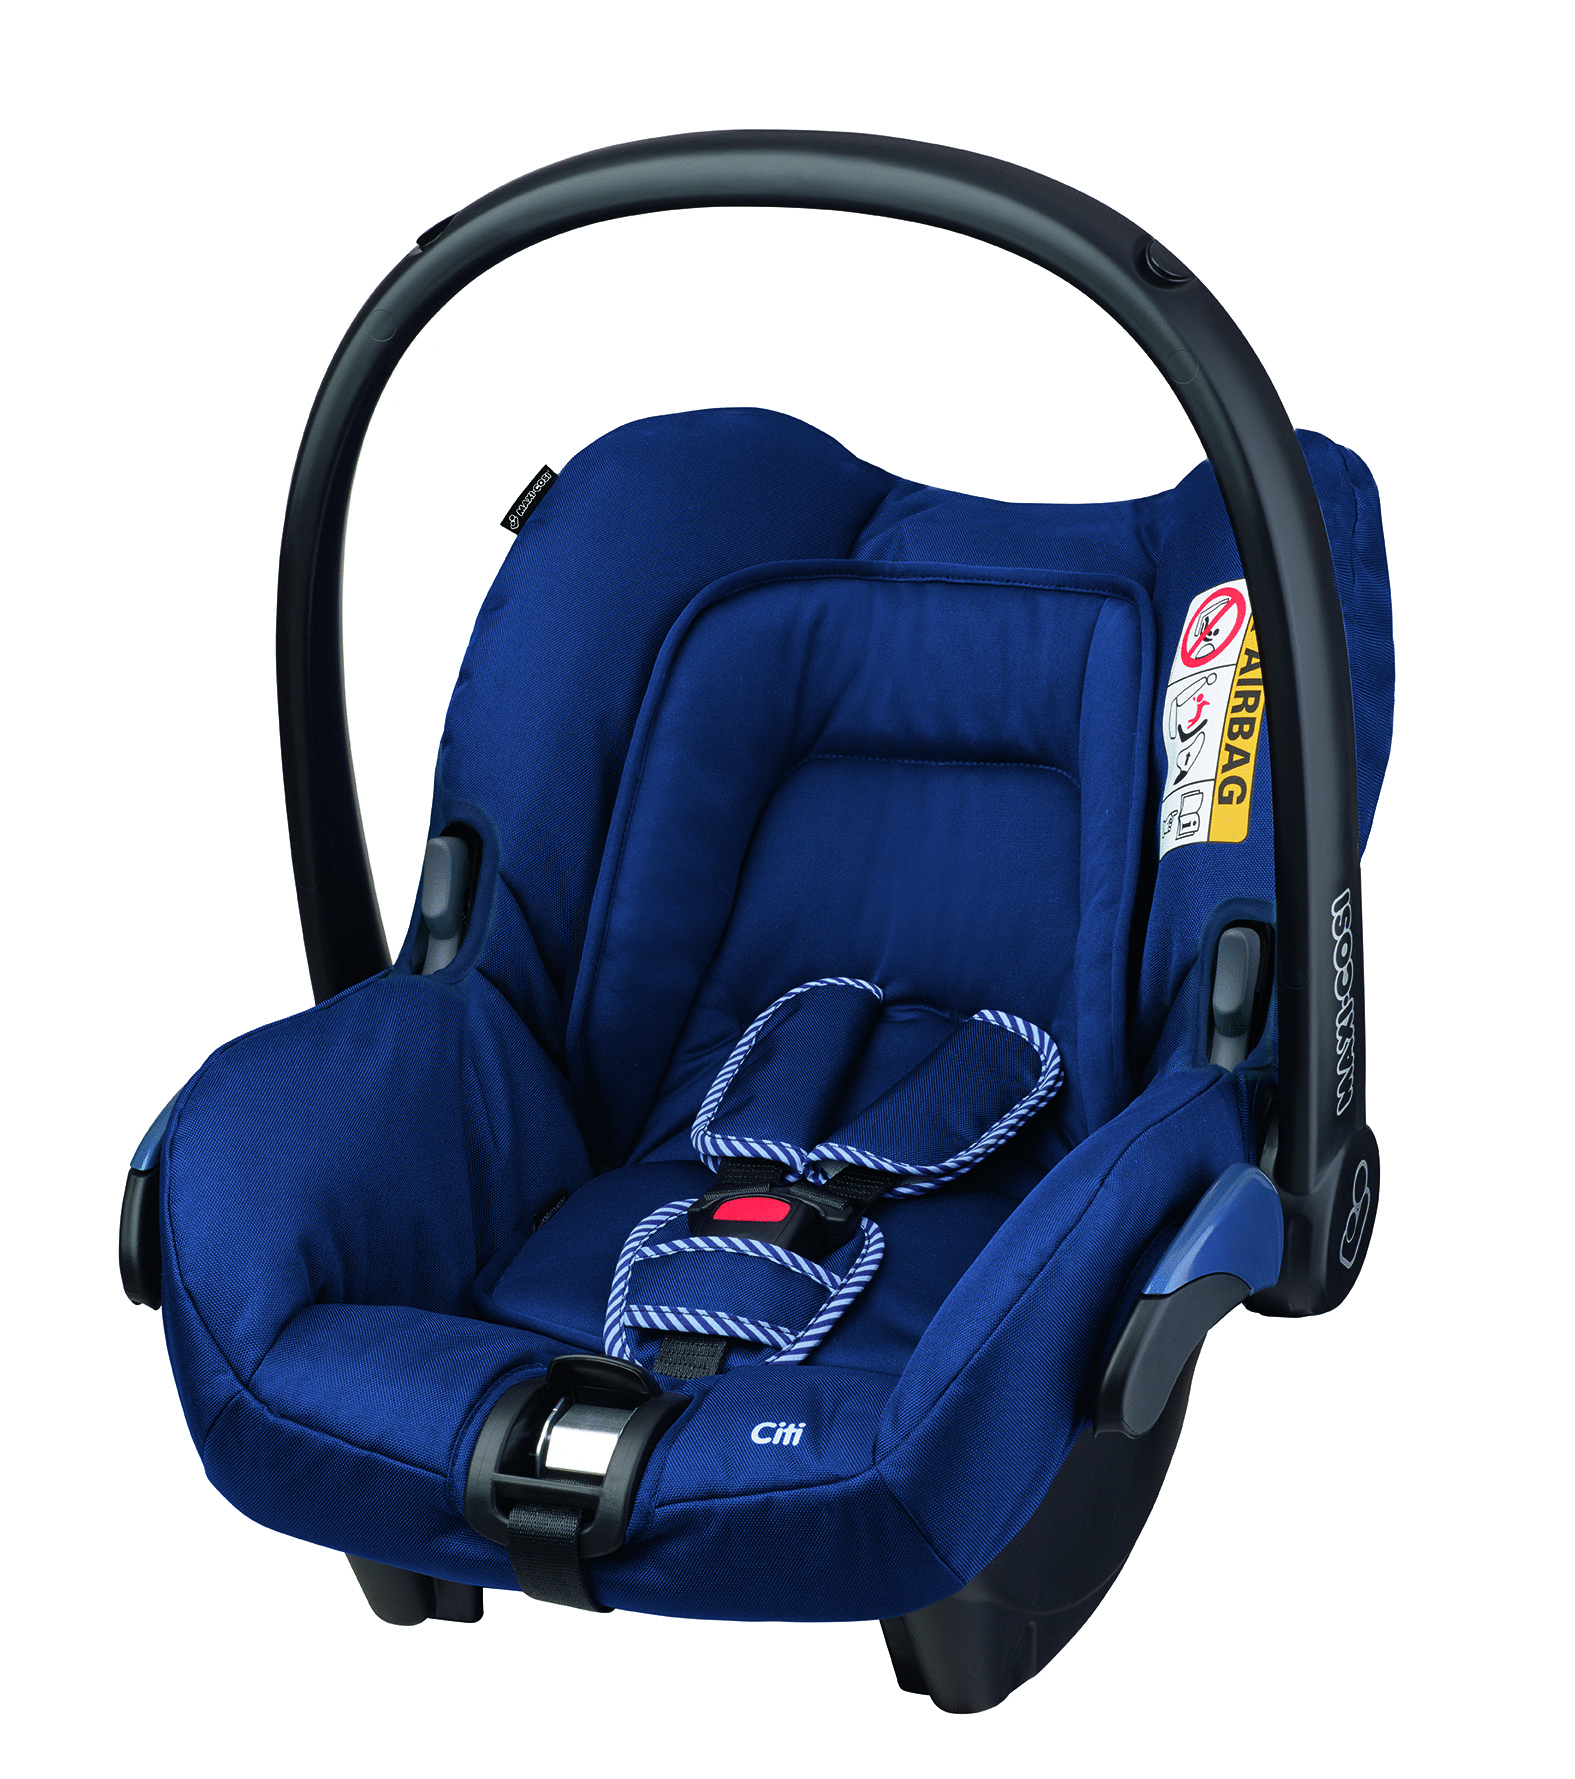 maxi cosi infant car seat citi 2018 river blue buy at. Black Bedroom Furniture Sets. Home Design Ideas